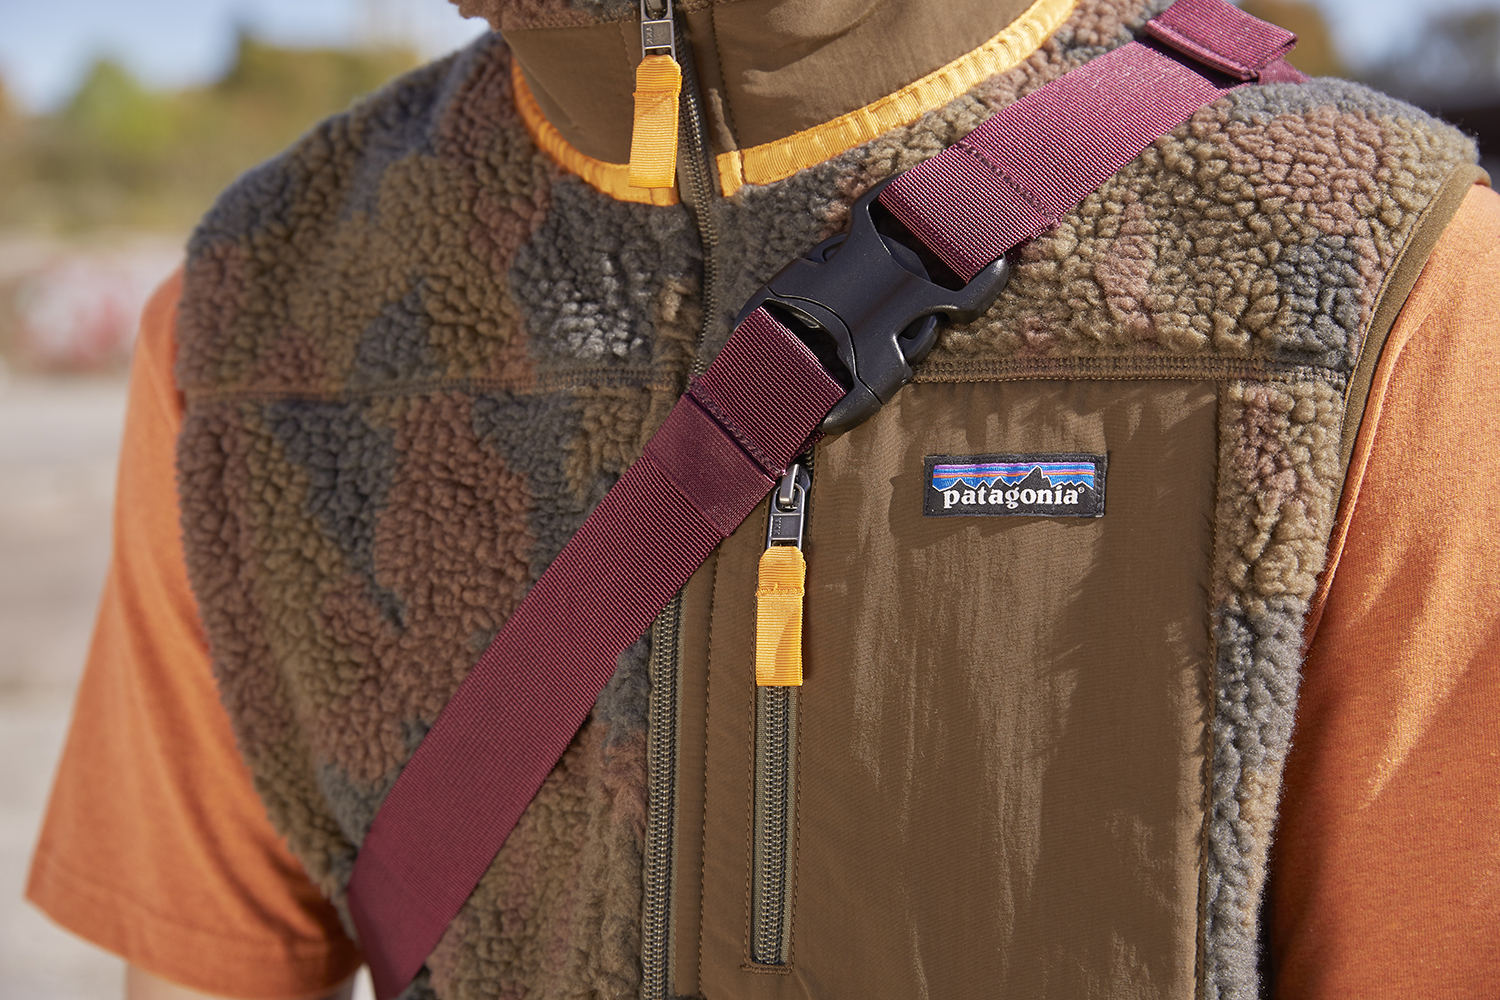 Patagonia AW18 Collection